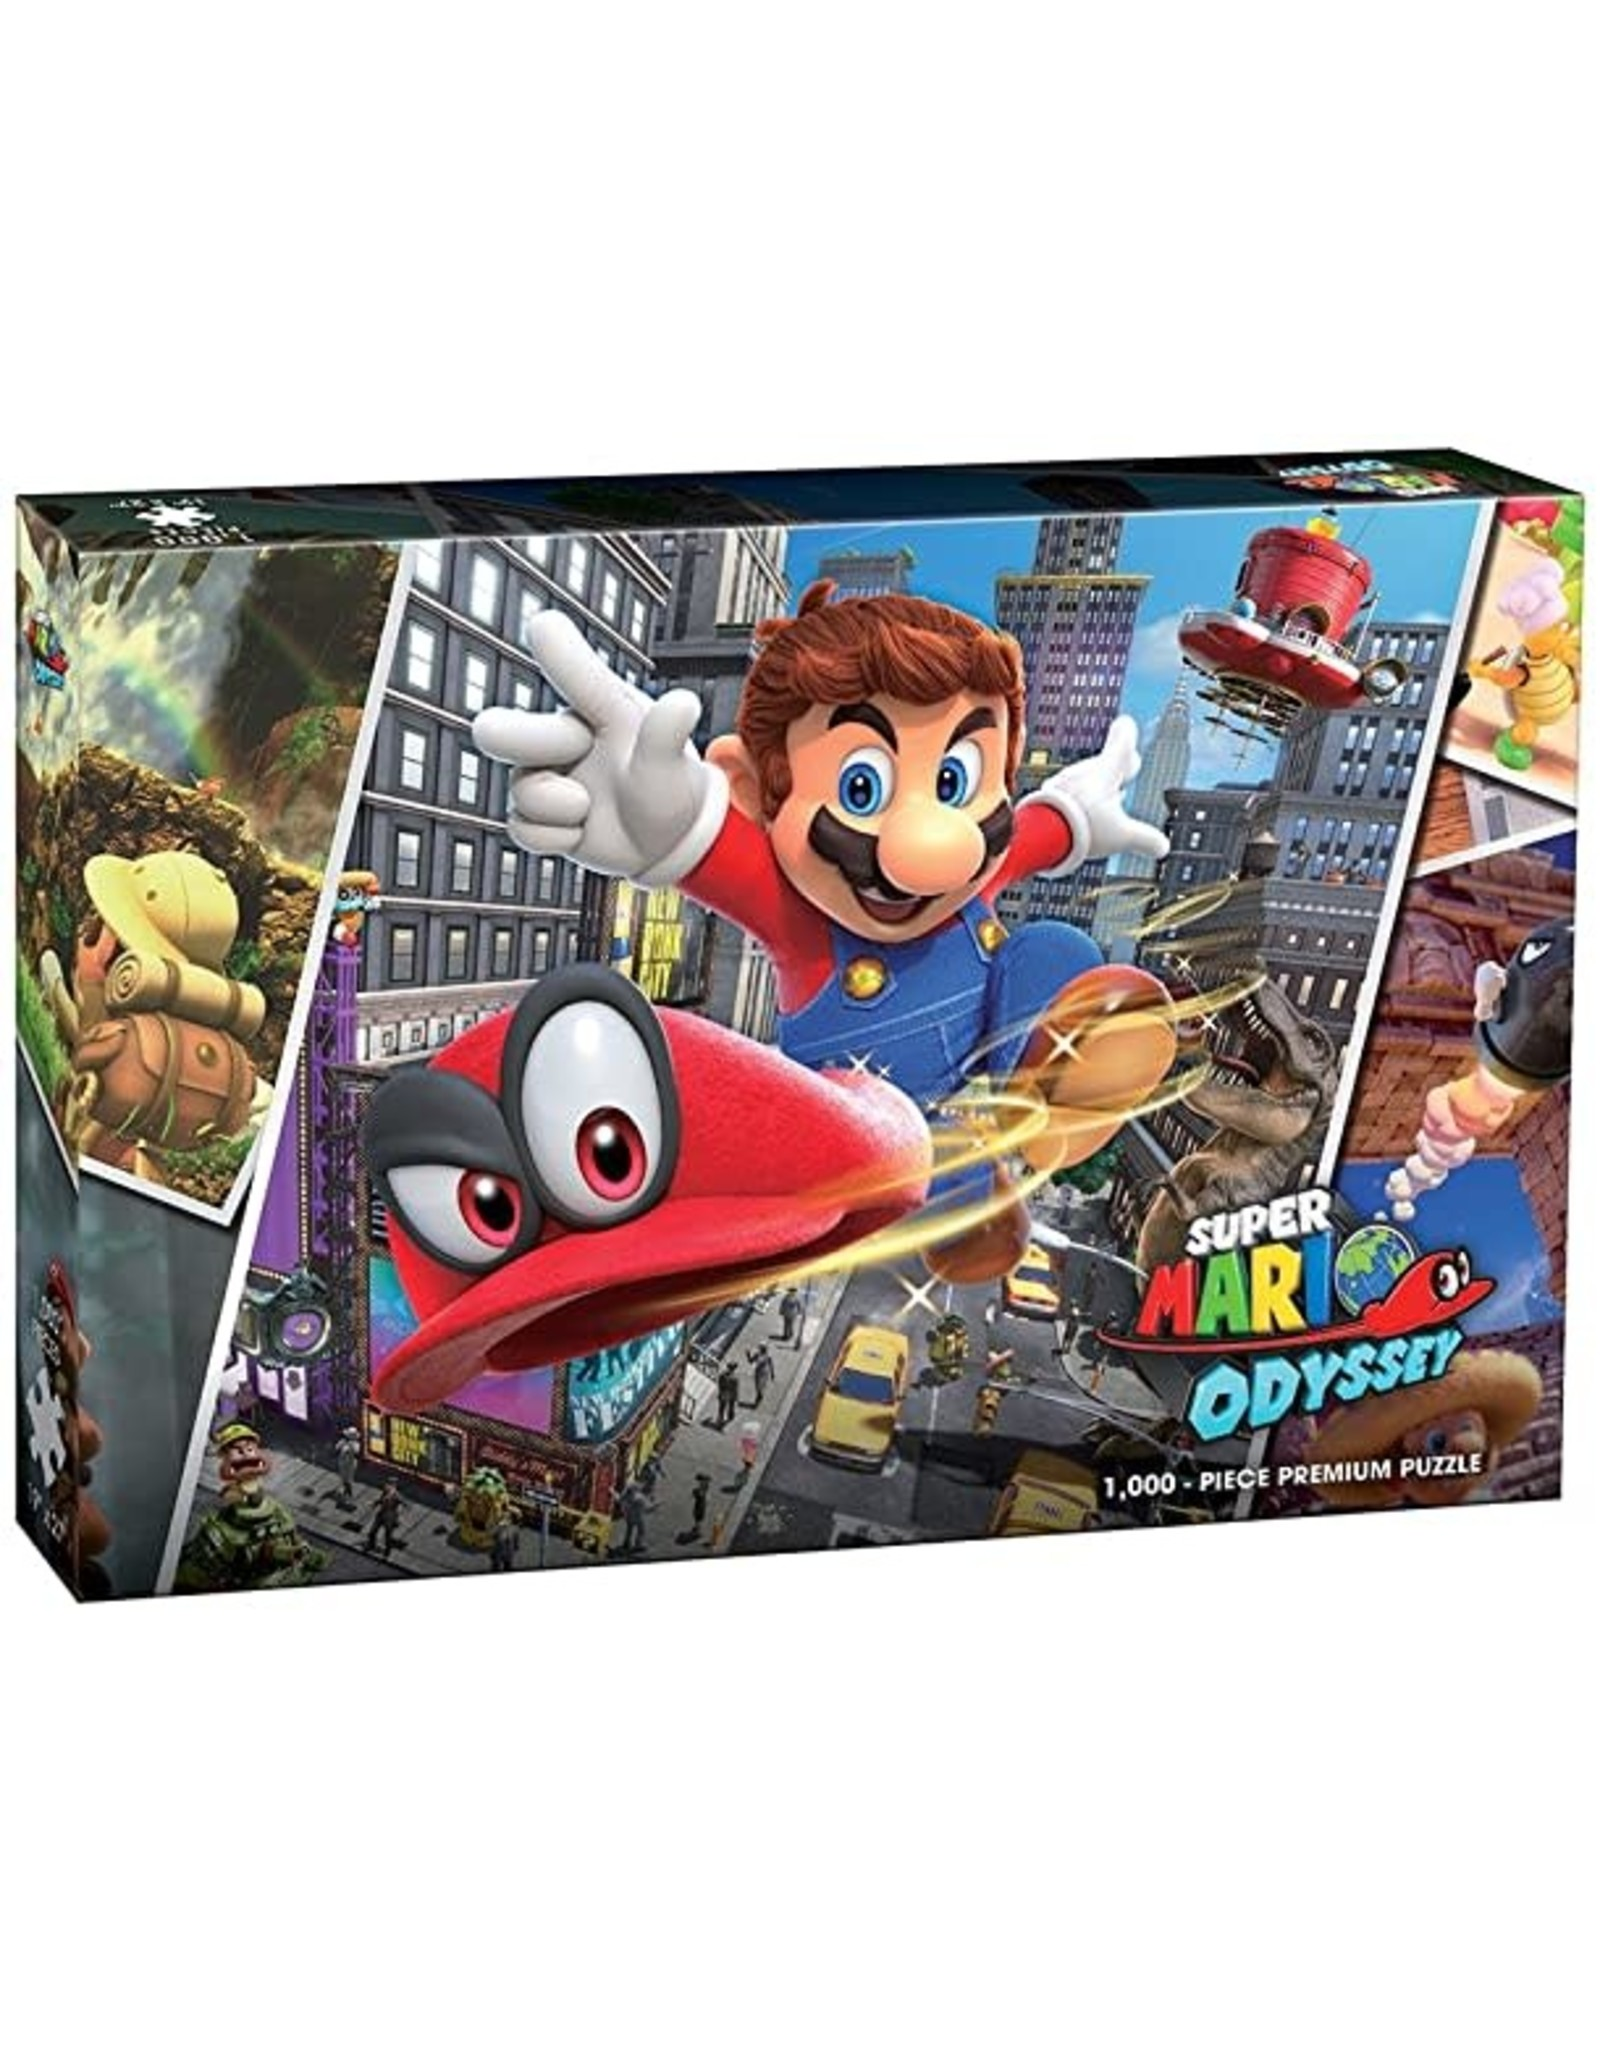 USAopoly Super Mario Odyssey Puzzle - Snapshot 1000 Pcs